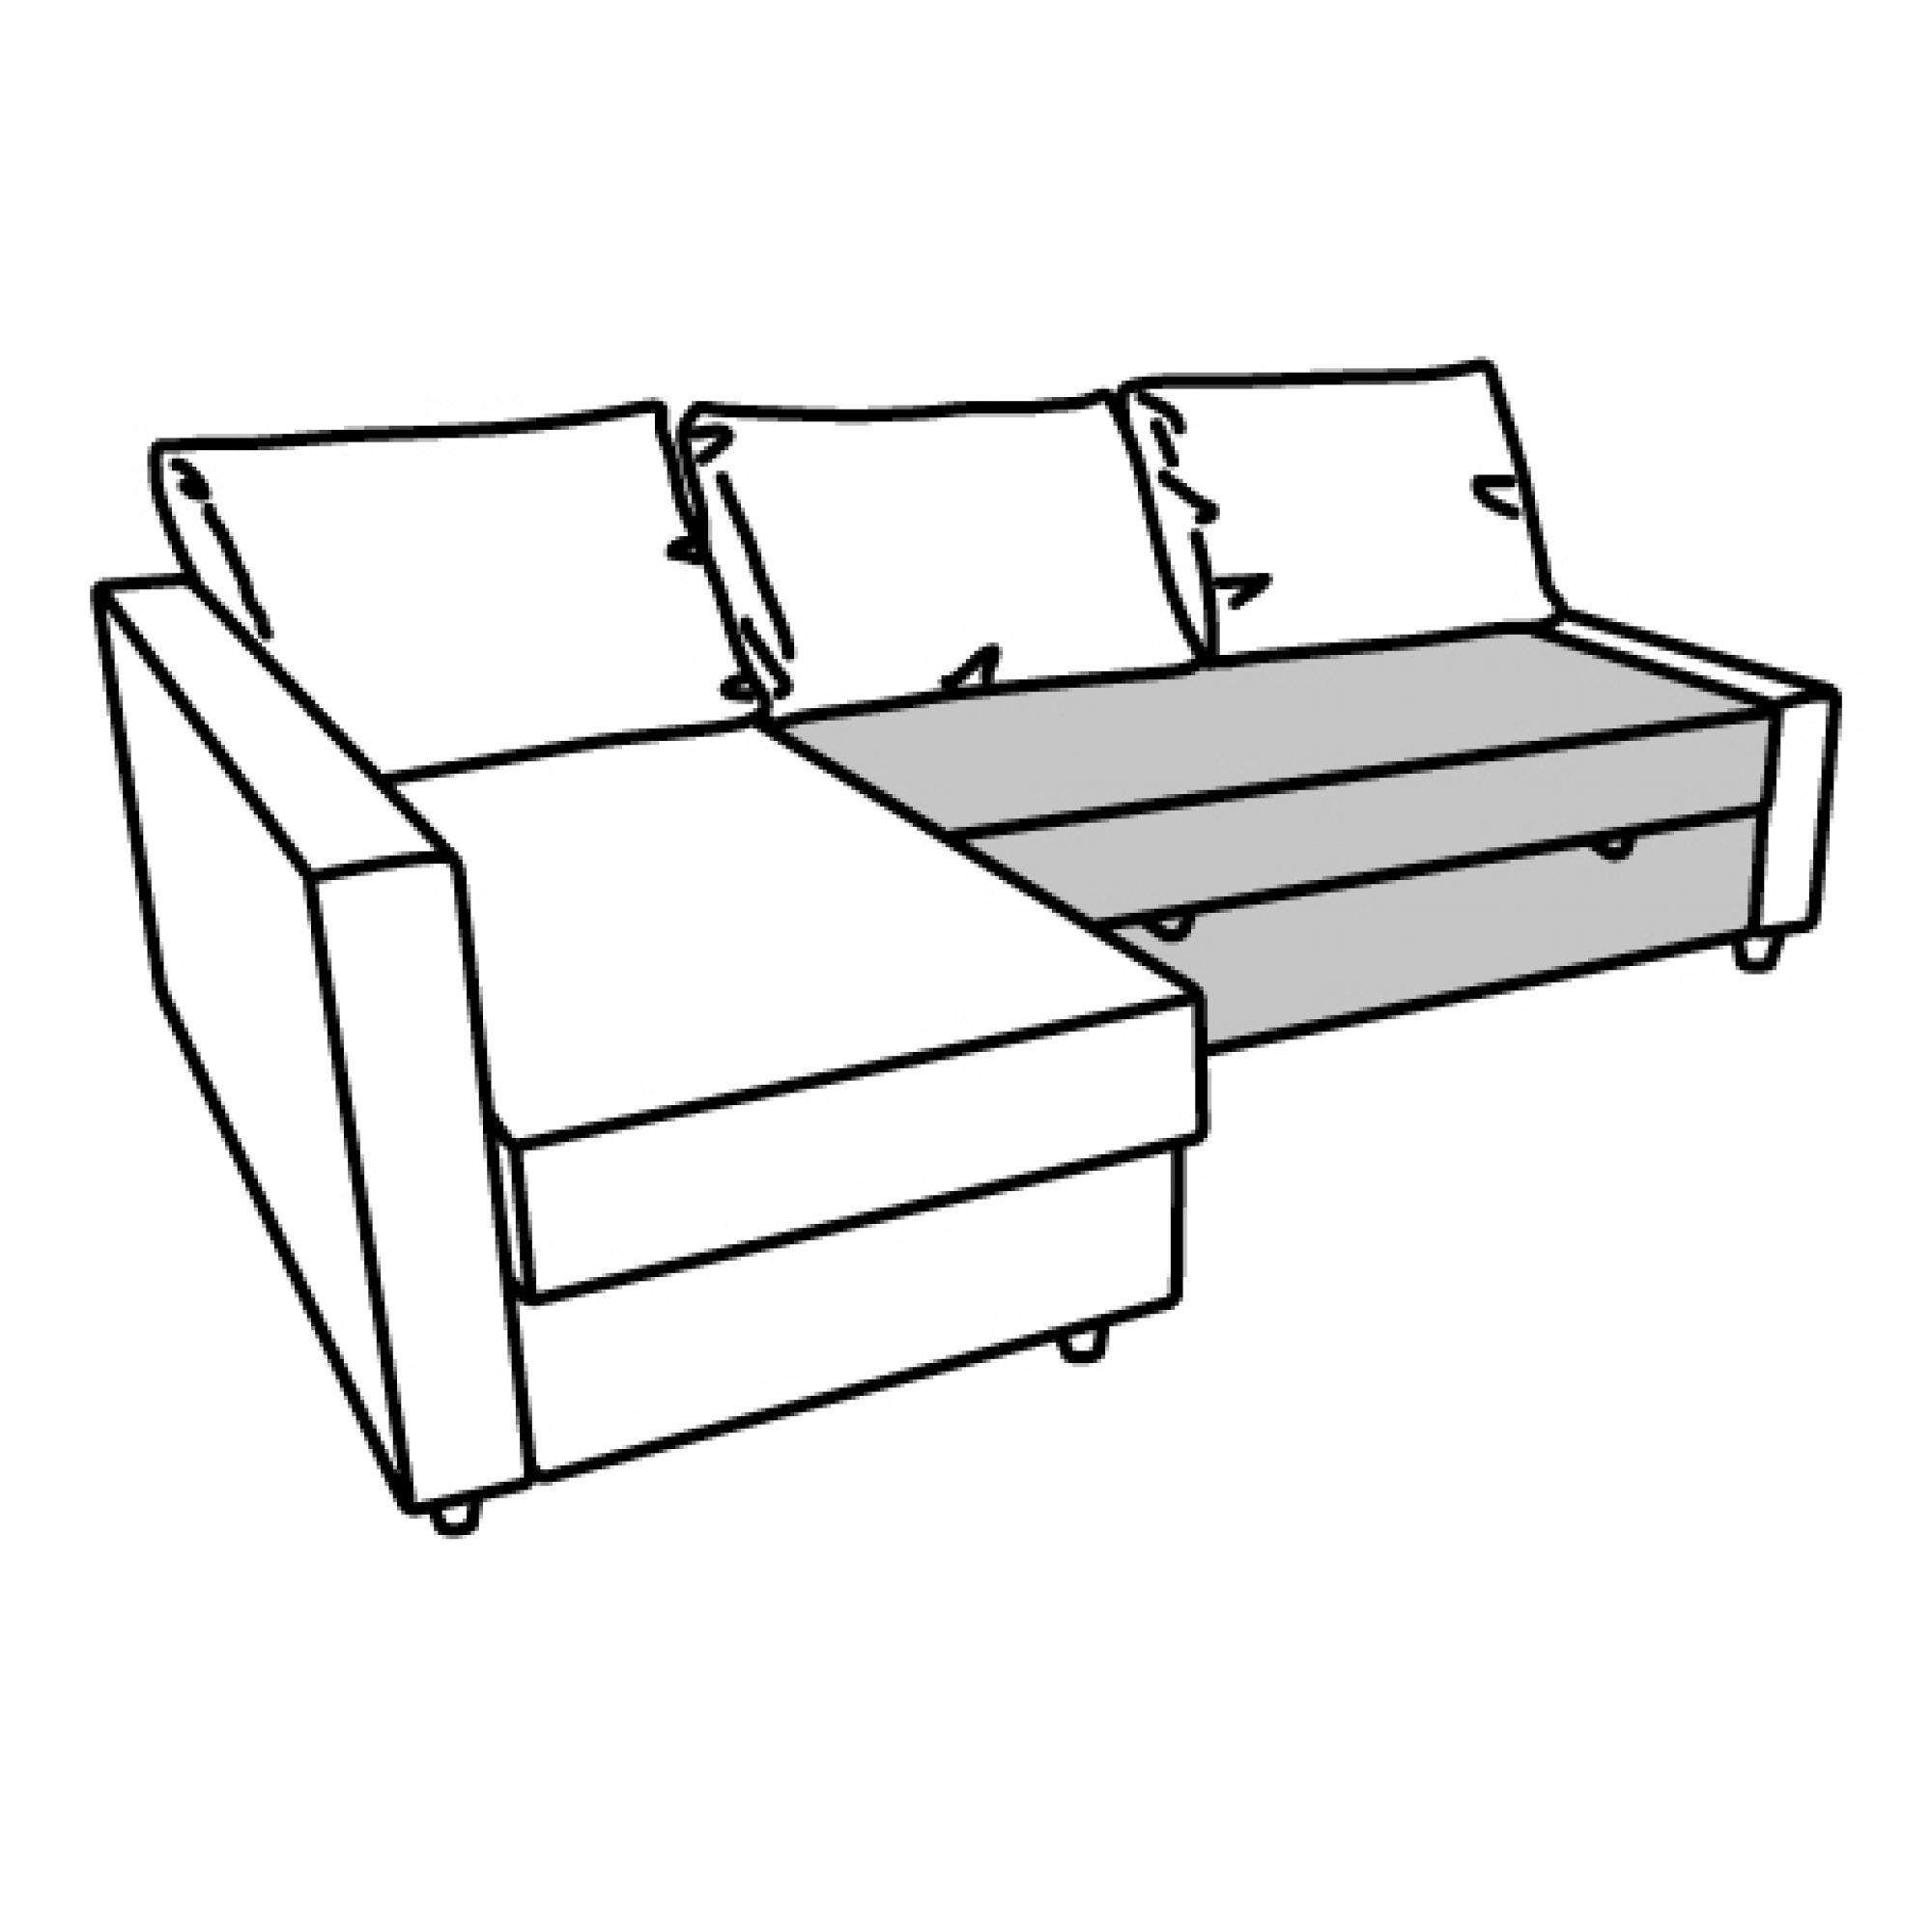 2000x2000 Couch Drawing Sofa Chair For Free Download